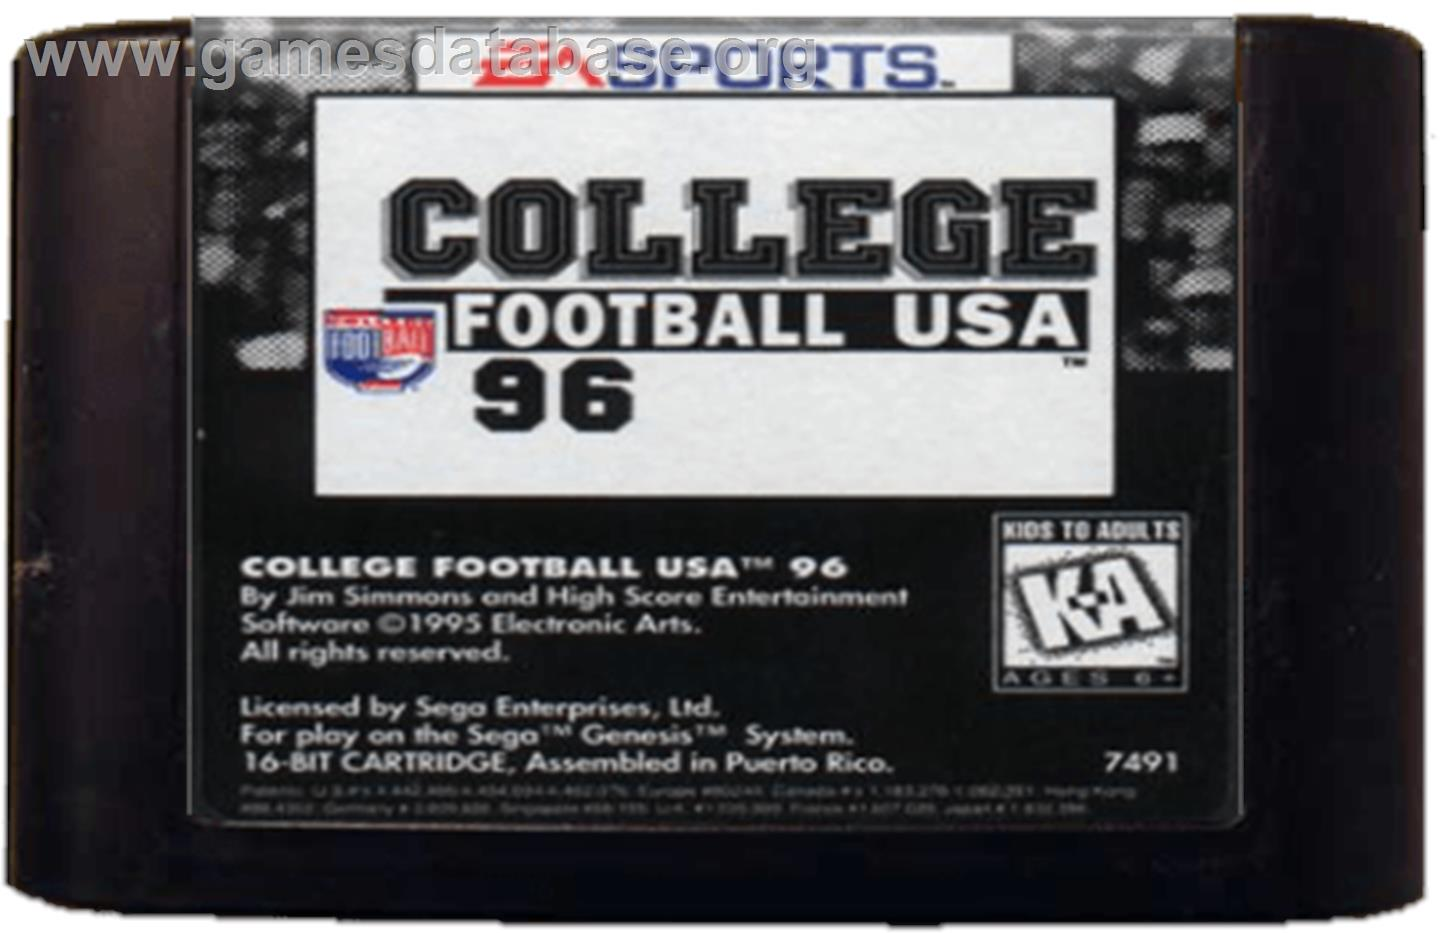 College Football USA 96 - Sega Genesis - Artwork - Cartridge